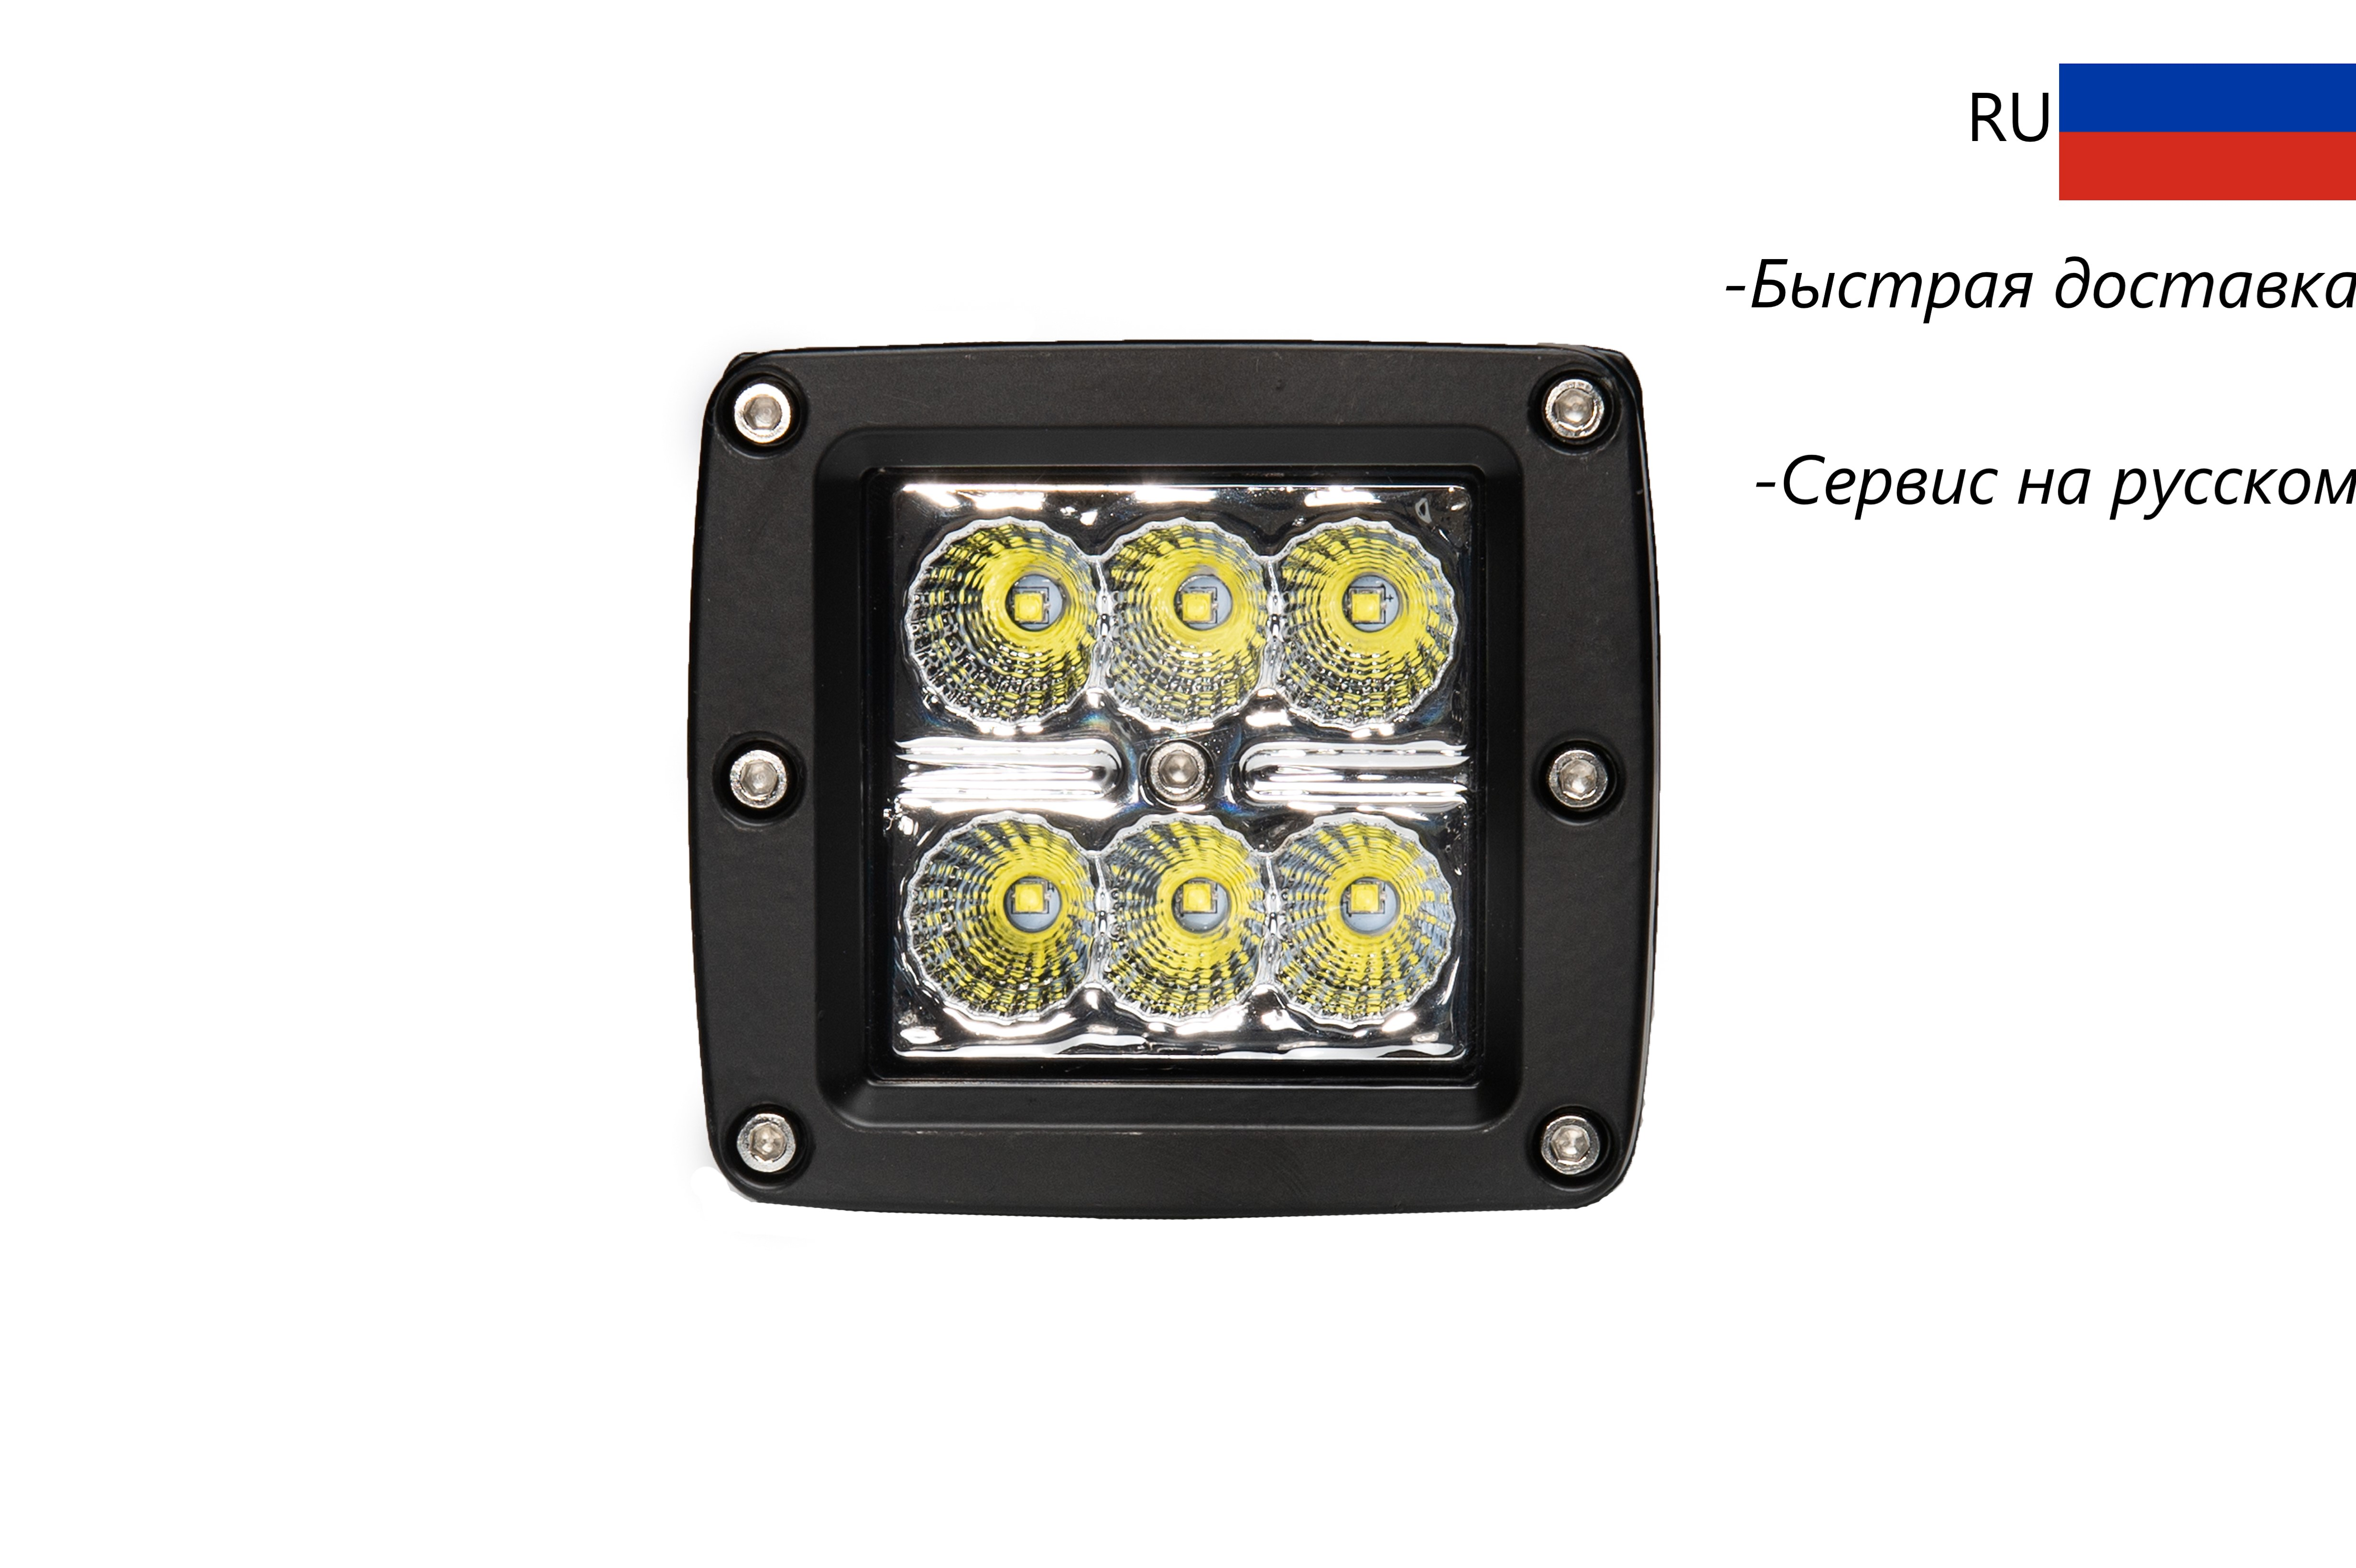 Car Led Light Bar 18W Work Light Lamp Cree Chip LED Motorcycle Tractor Boat Off Road Field 4x4 Car Accessories Truck SUV 12V 24V-in Light Bar/Work Light from Automobiles & Motorcycles